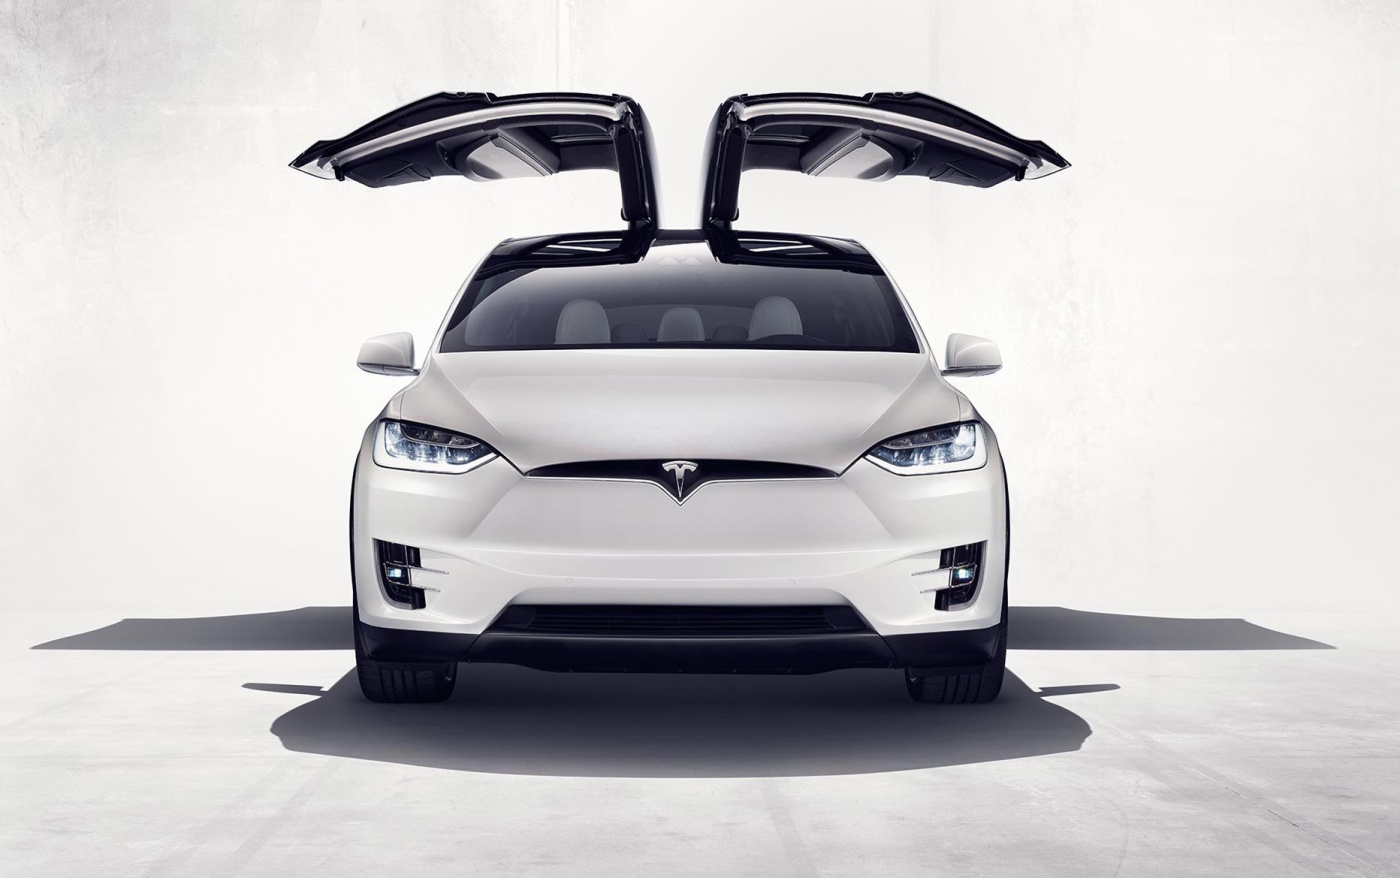 tesla model x les tarifs pour la france blog automobile. Black Bedroom Furniture Sets. Home Design Ideas